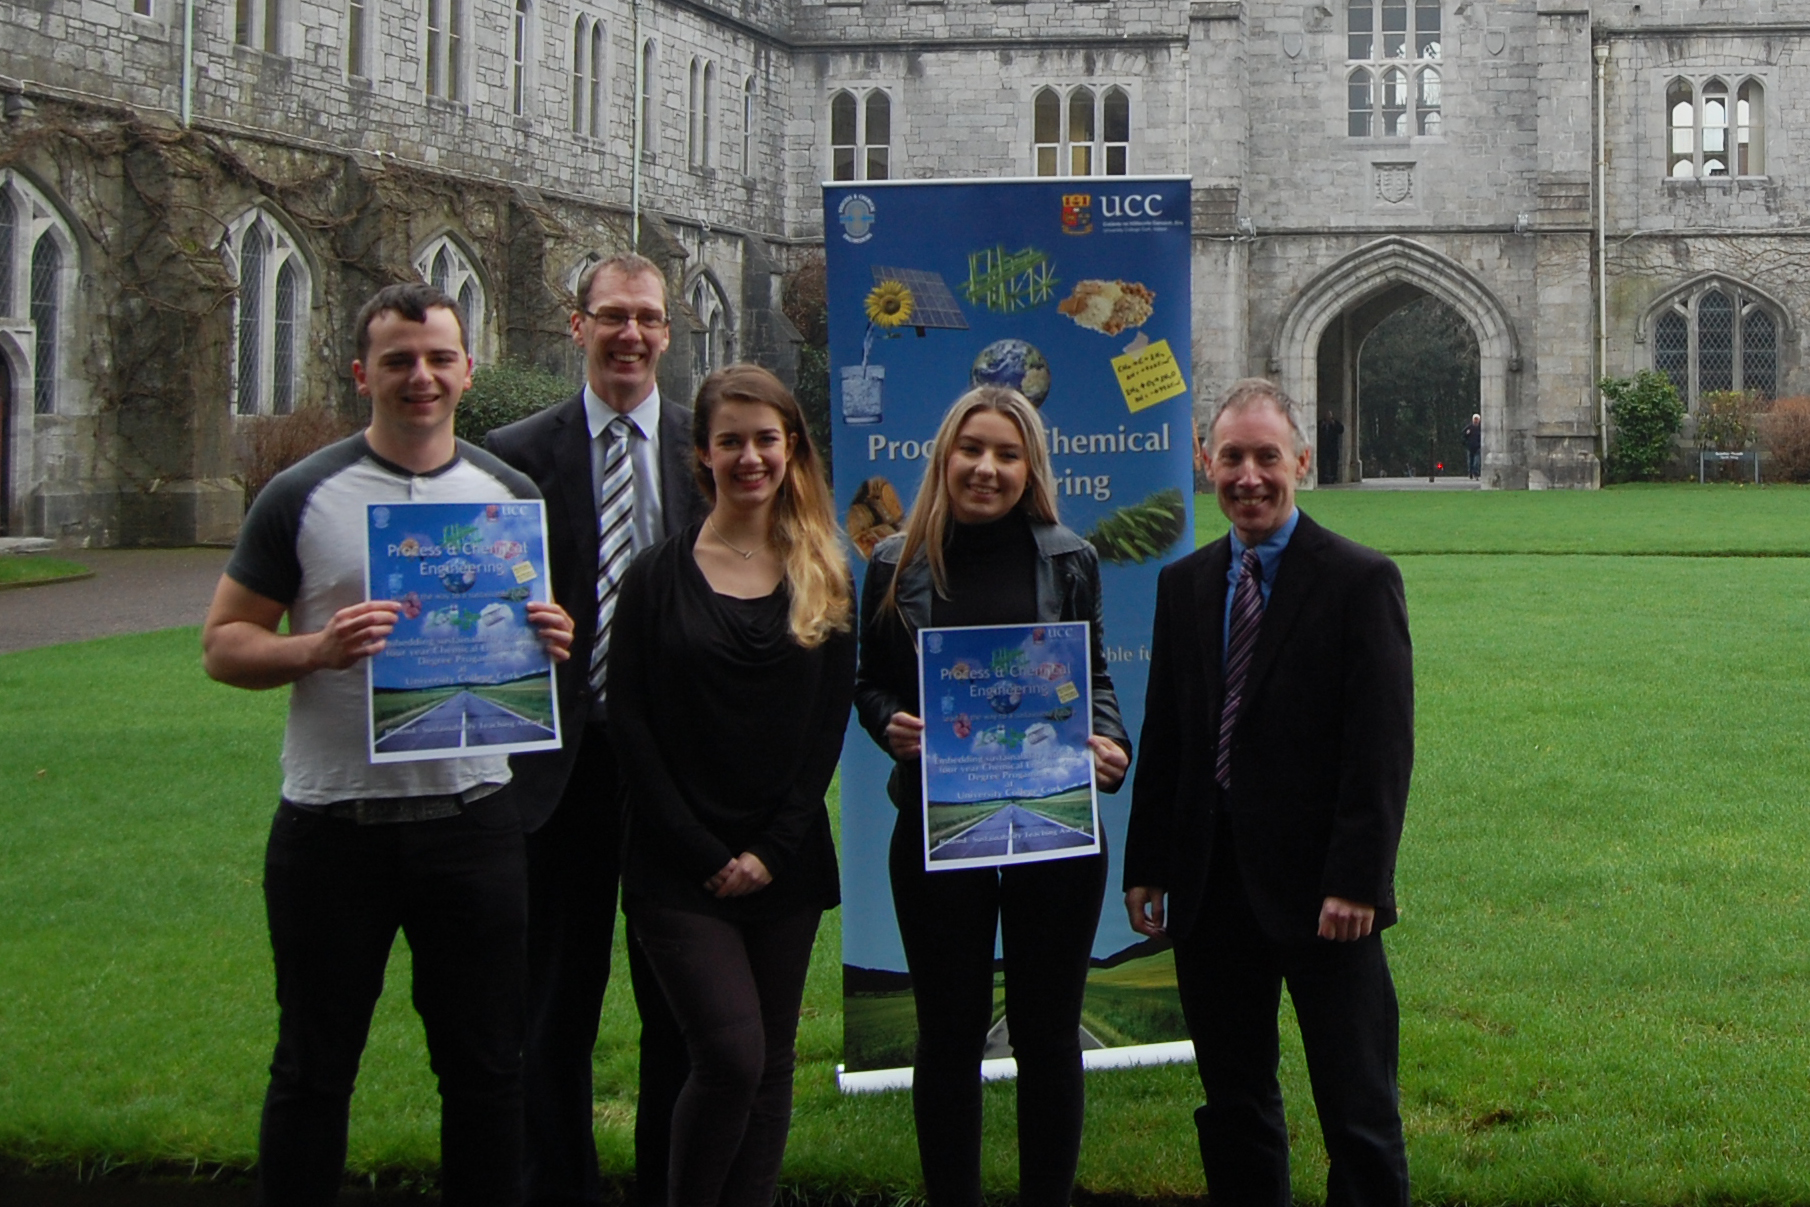 International recognition for UCC's Process & Chemical Engineering programme: Winner of the IChemE Sustainability Teaching Award 2016